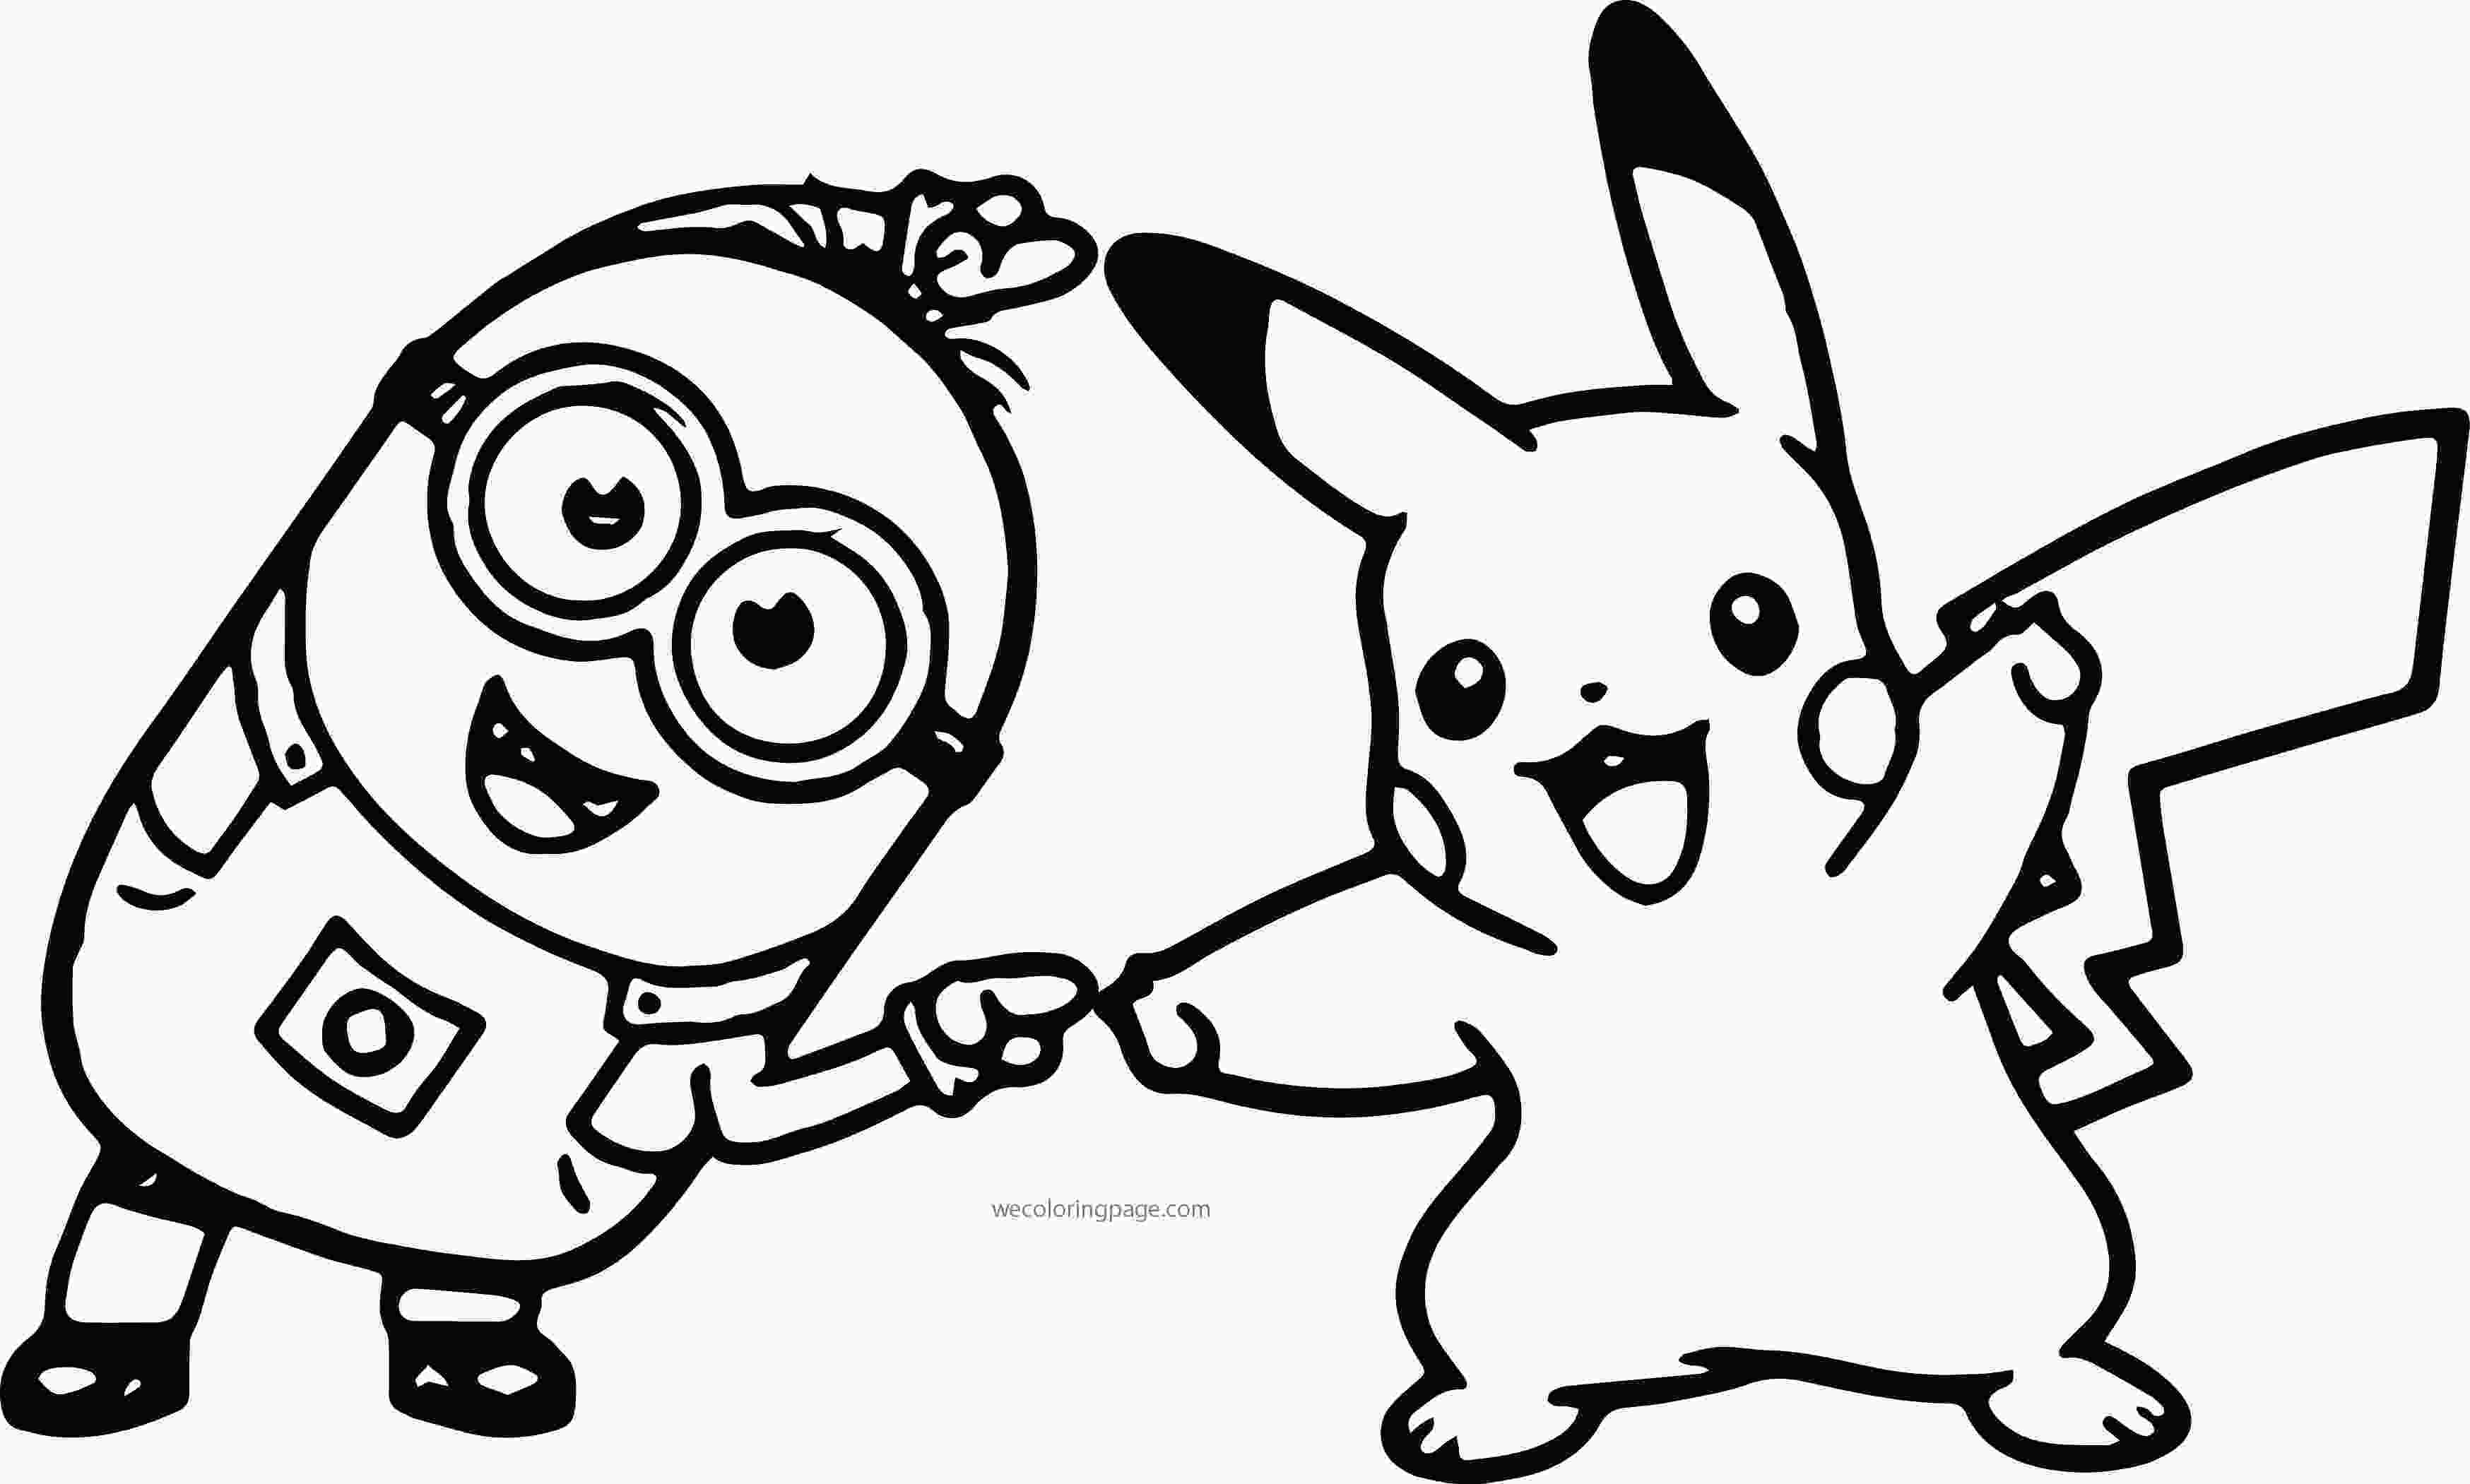 minions color minion pikachu dance pokemon coloring page